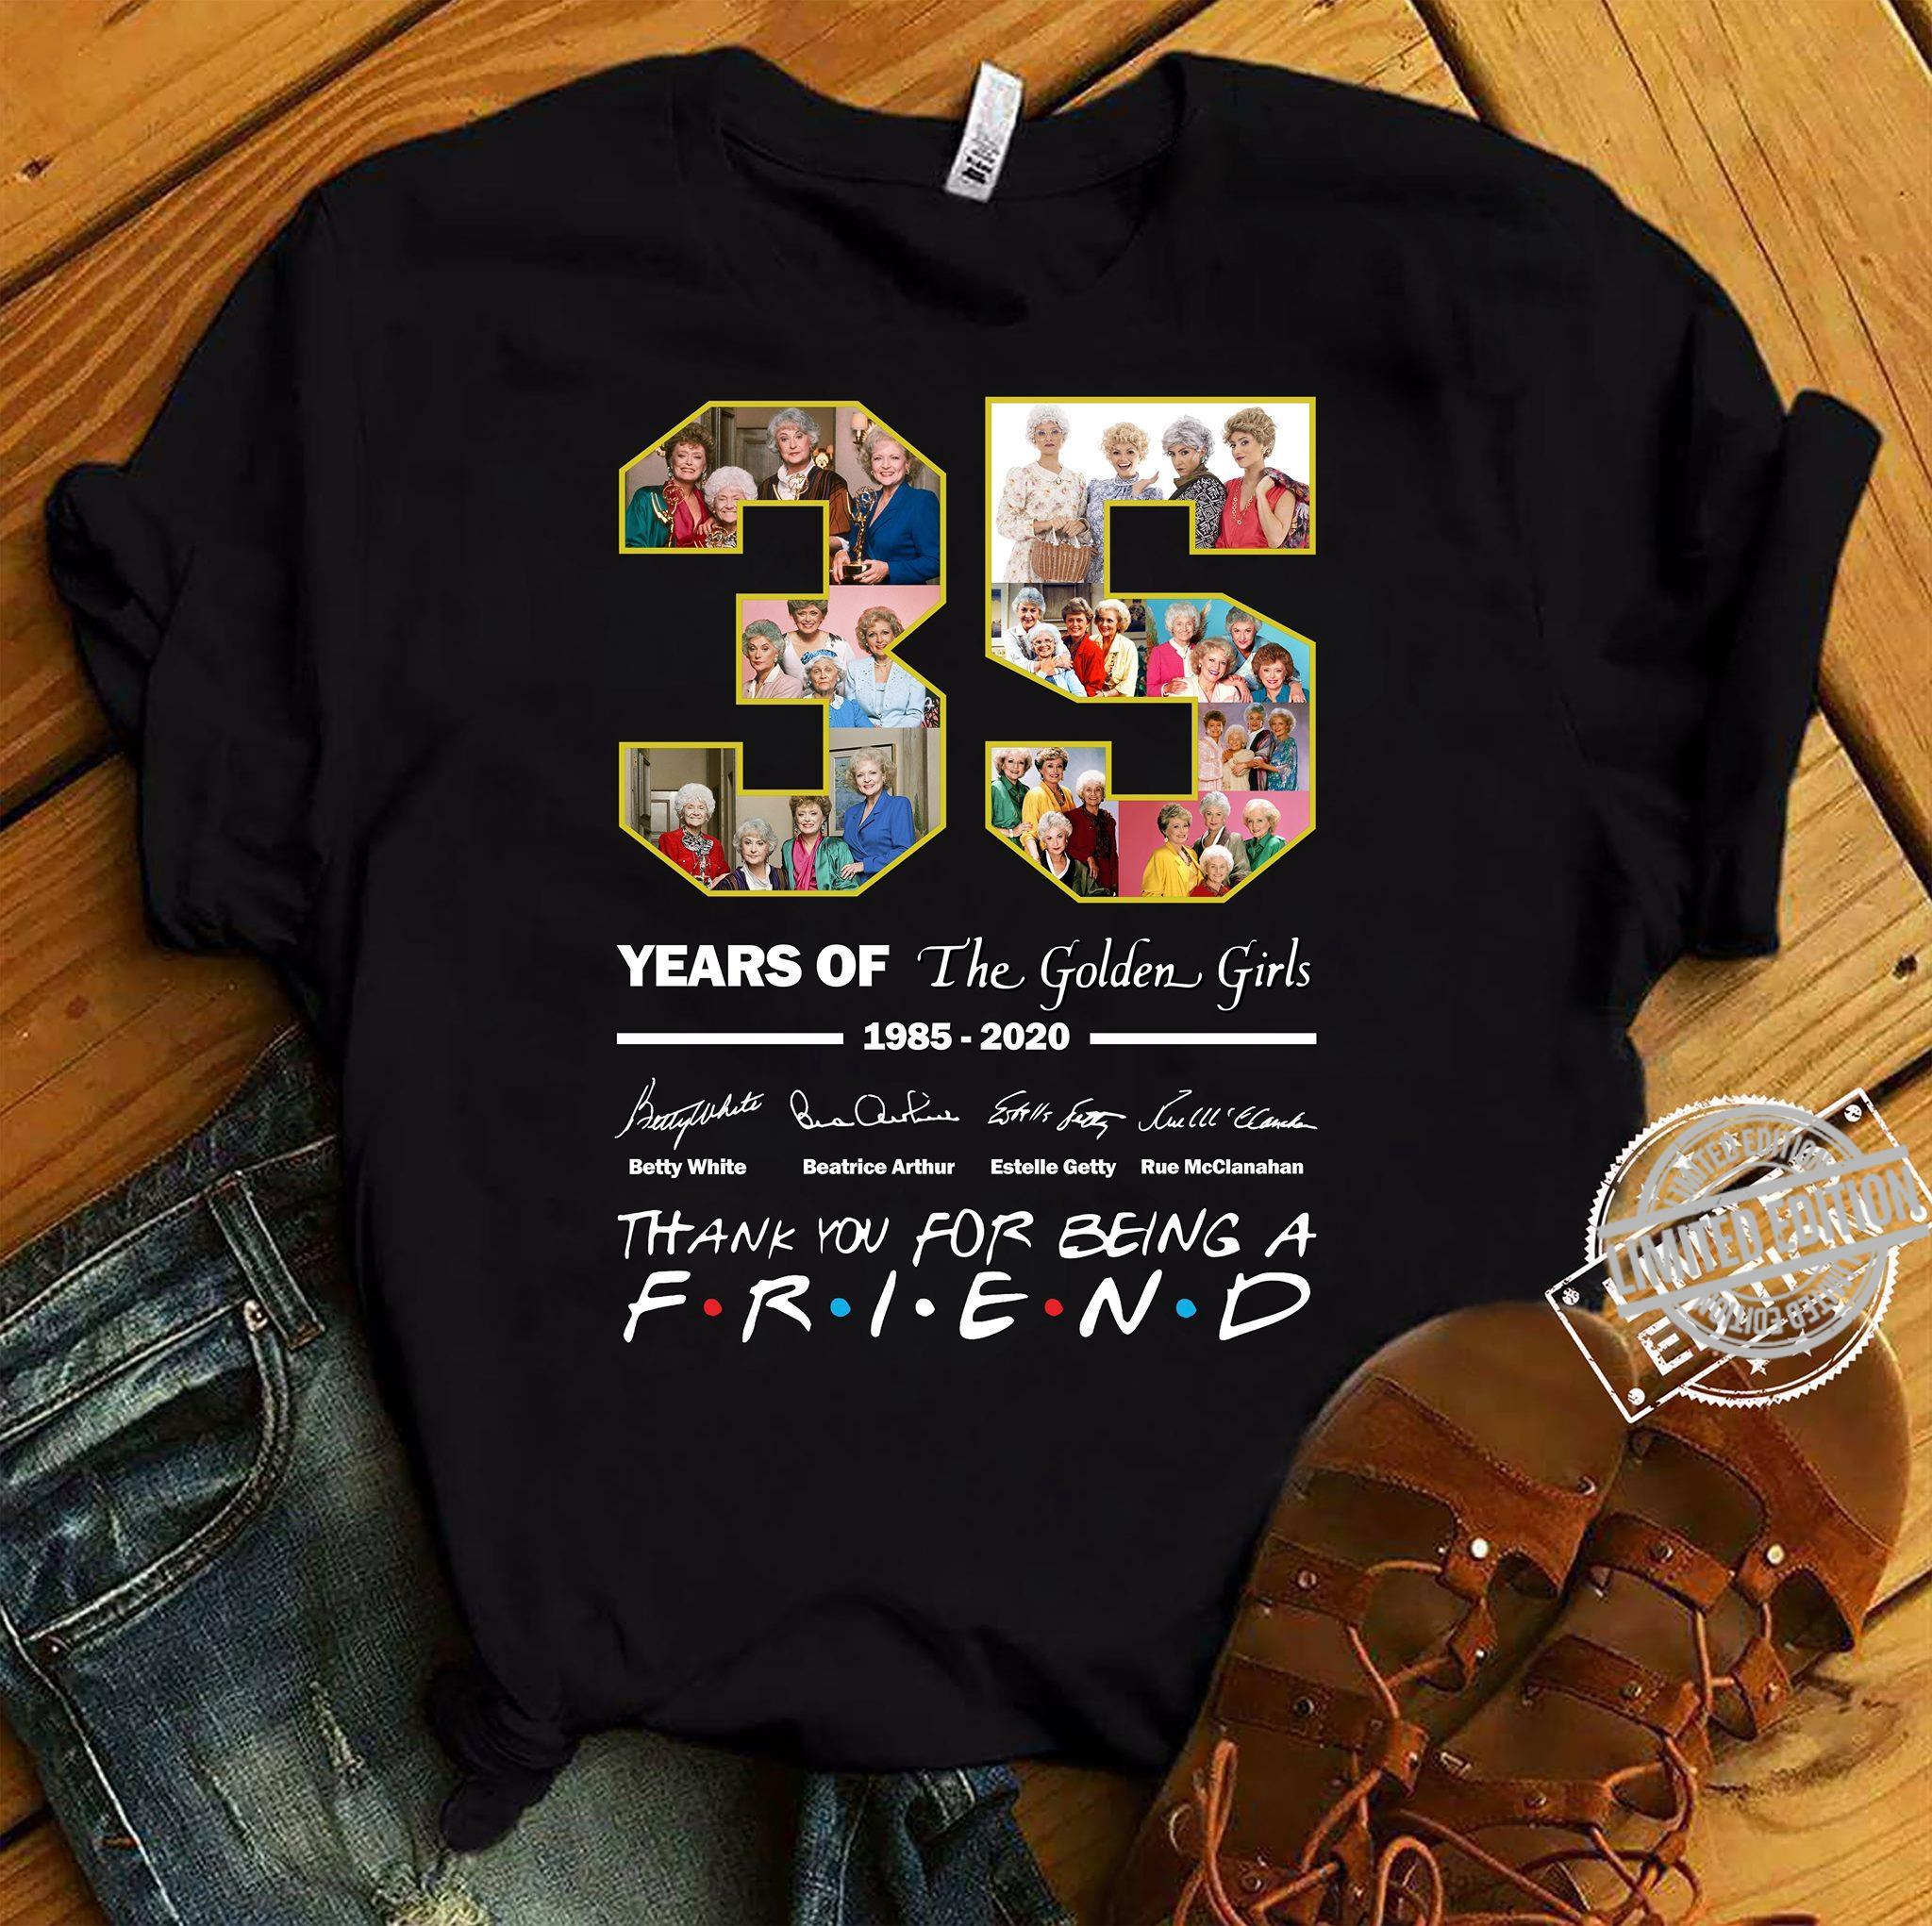 35 Years Of The Golden Girls 1985-2020 Thank You For Being A Friend Shirt